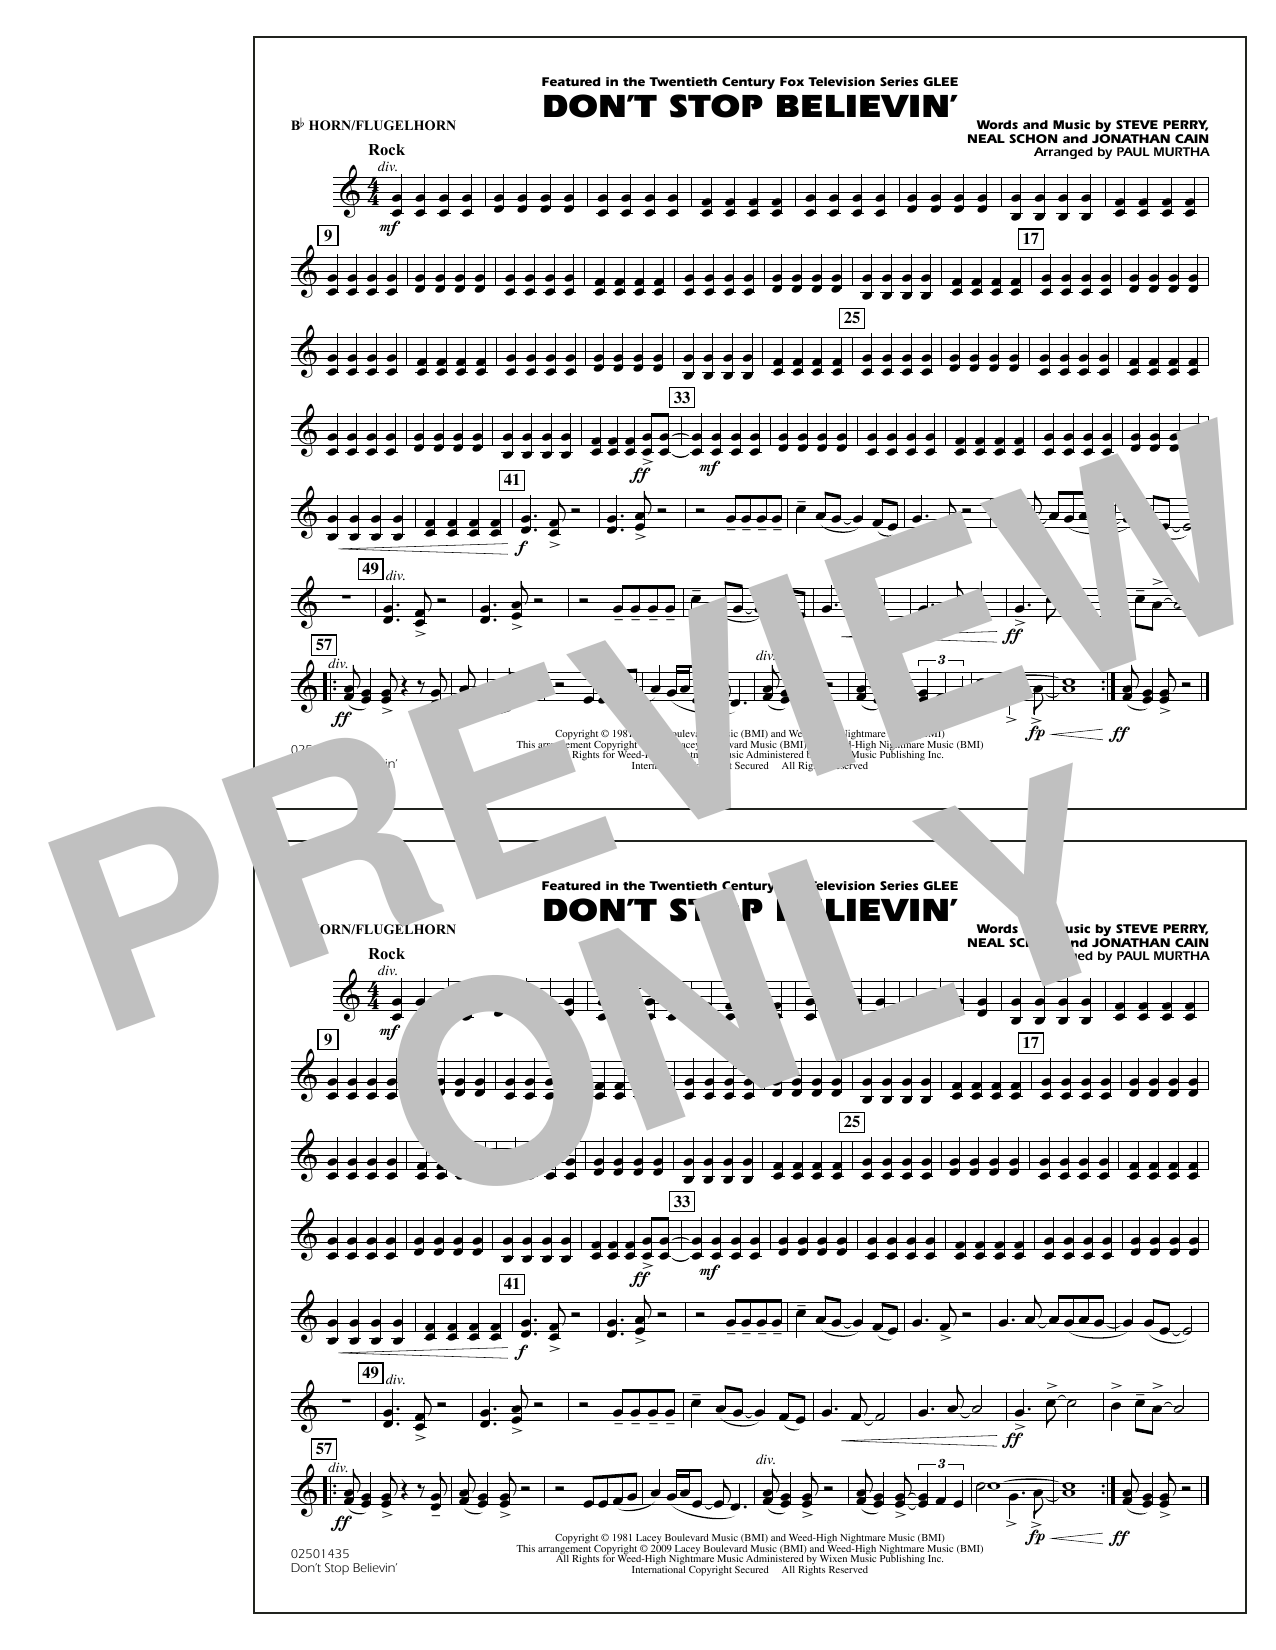 Paul Murtha Don't Stop Believin' - Bb Horn/Flugelhorn sheet music notes and chords. Download Printable PDF.